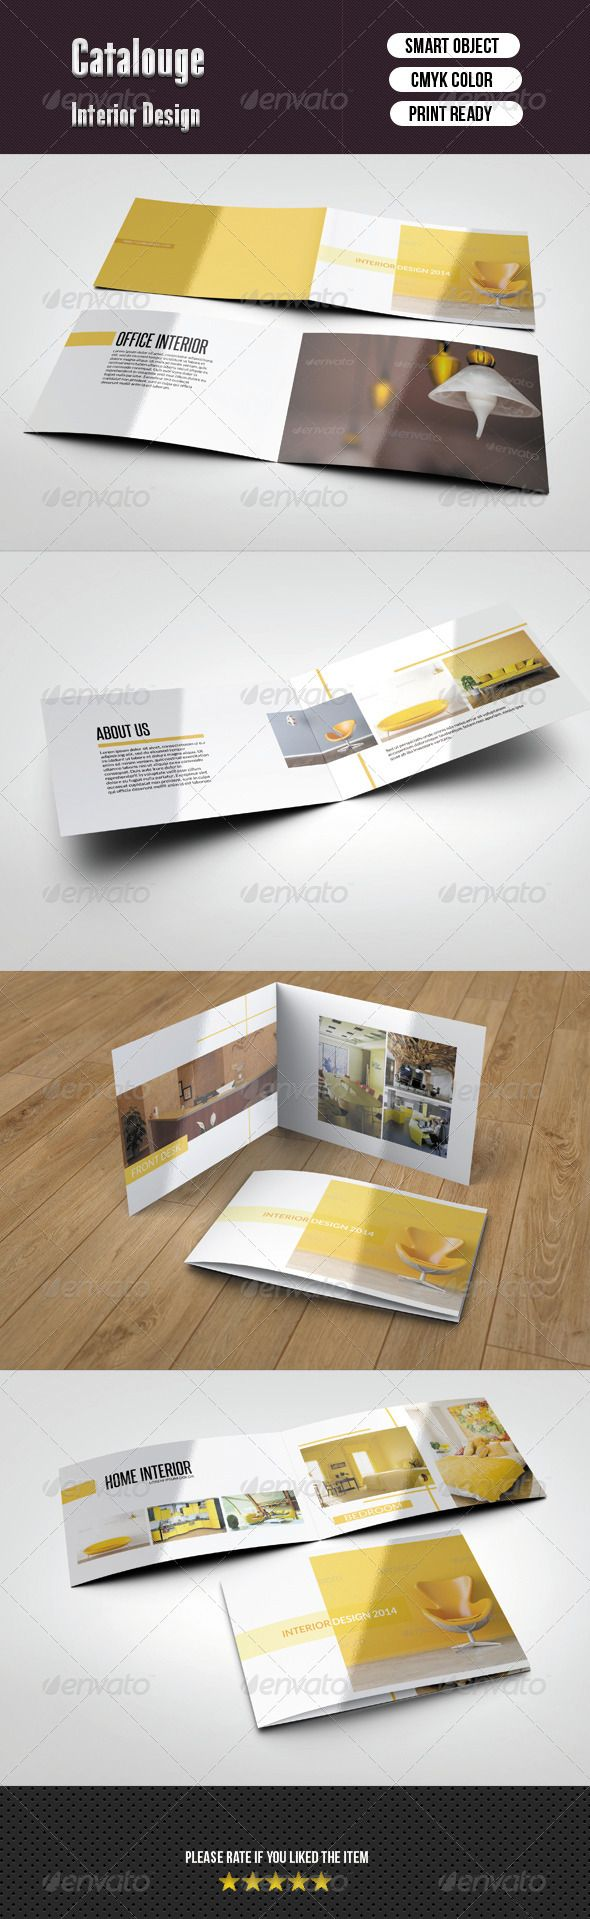 interior catalog catalogs brochures graphic design